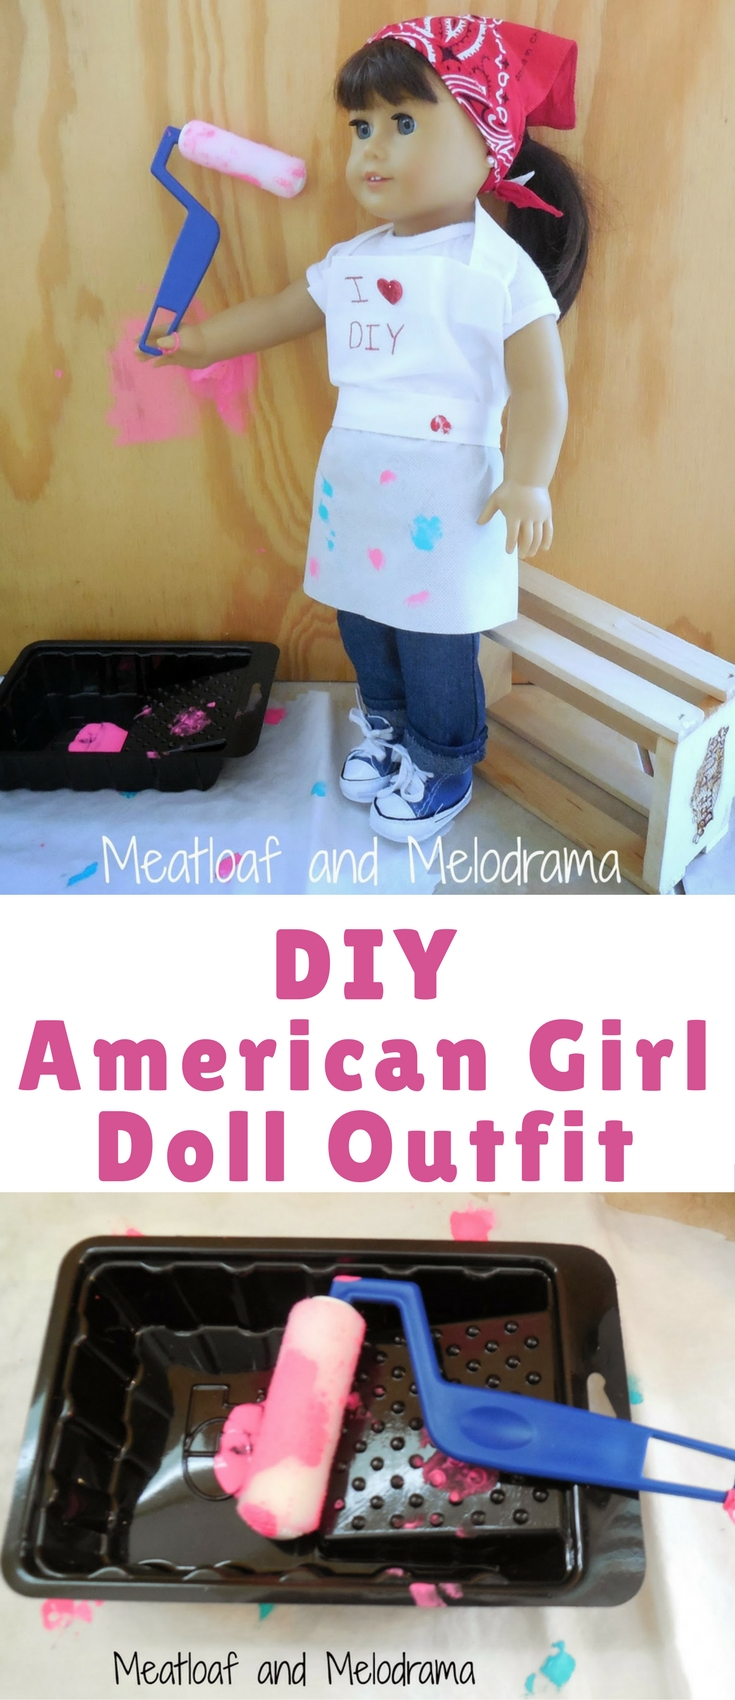 My little helper and I are having a blast creating no-sew clothes for her American Girl Doll. This outfit really wasn't planned, but it was inspired by a recent trip to Home Depot. This is for all the DIYers out there!